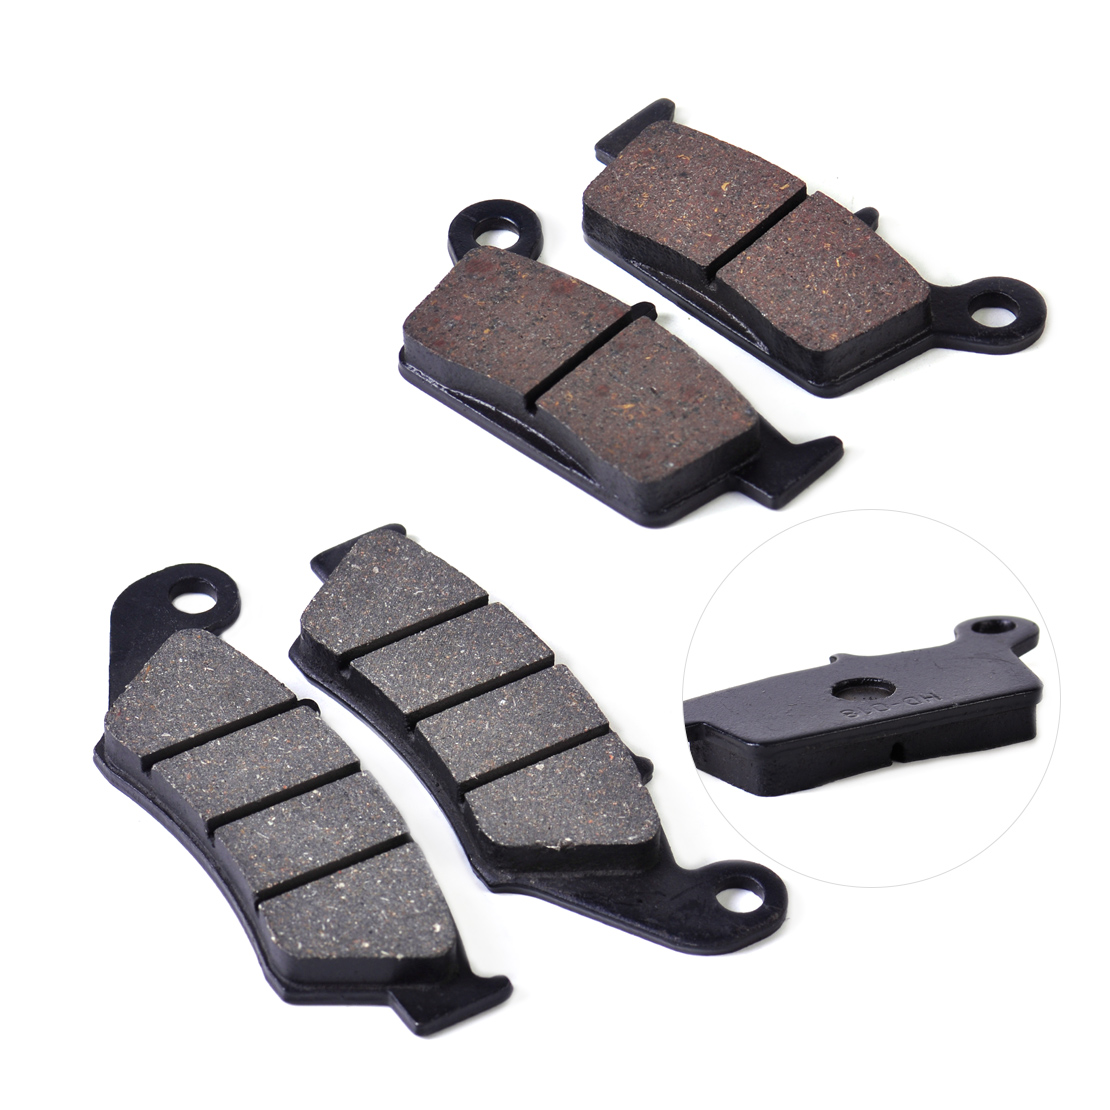 2pcs Motorcycle Front or Rear Brake Pads Fit for Suzuki RM125 RM250 Honda CR125R XR250R Yamaha YZ125 Kawasaki KX500 Suzuki RM125 motorcycle front and rear brake pads for honda cr125r cr250r cr500r cr 125 250 500 r 1987 2001